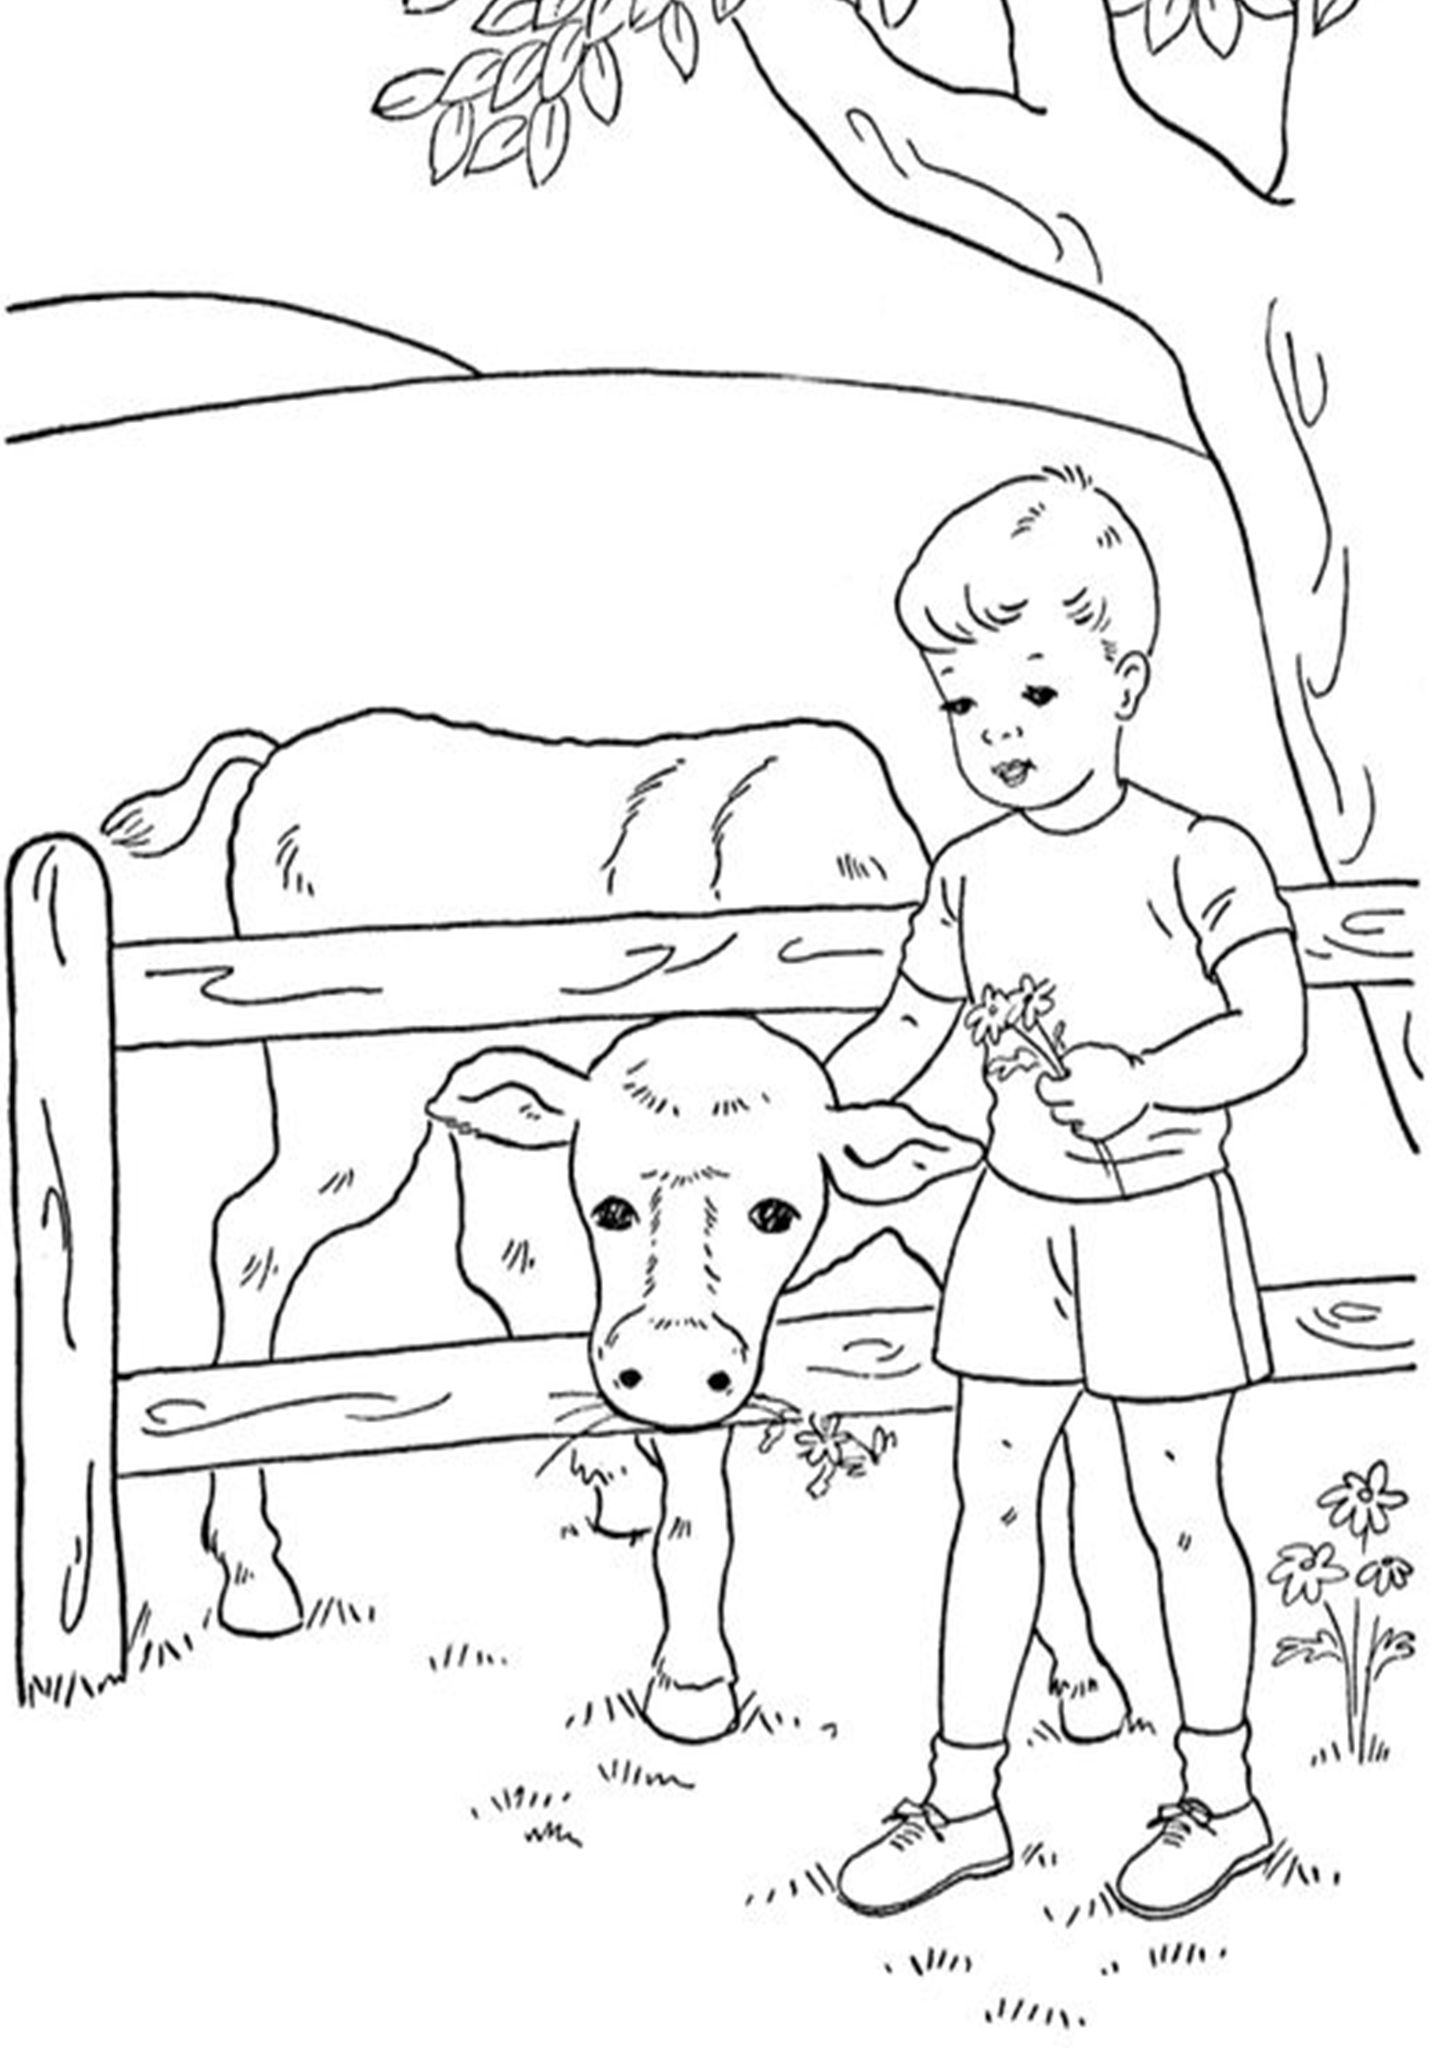 Pin on Animals, Dragons & Dinosaur Coloring Pages